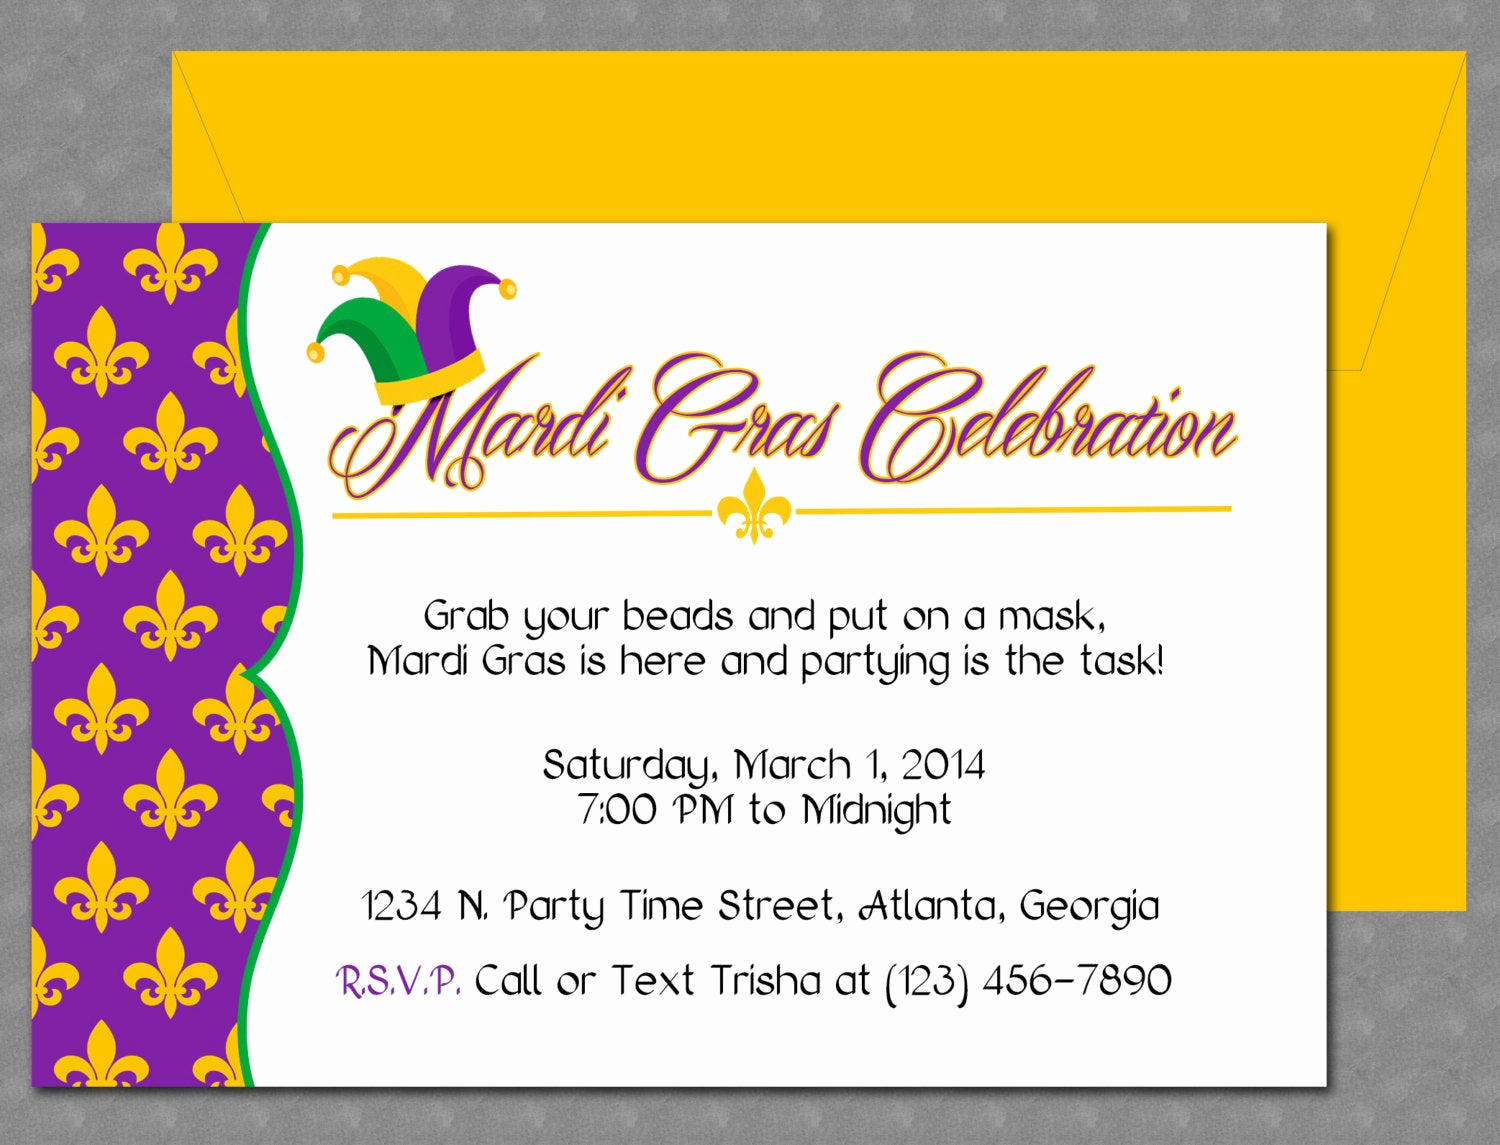 Mardi Gras Invitation Template Fresh Mardi Gras Invitation Design Editable Template Microsoft